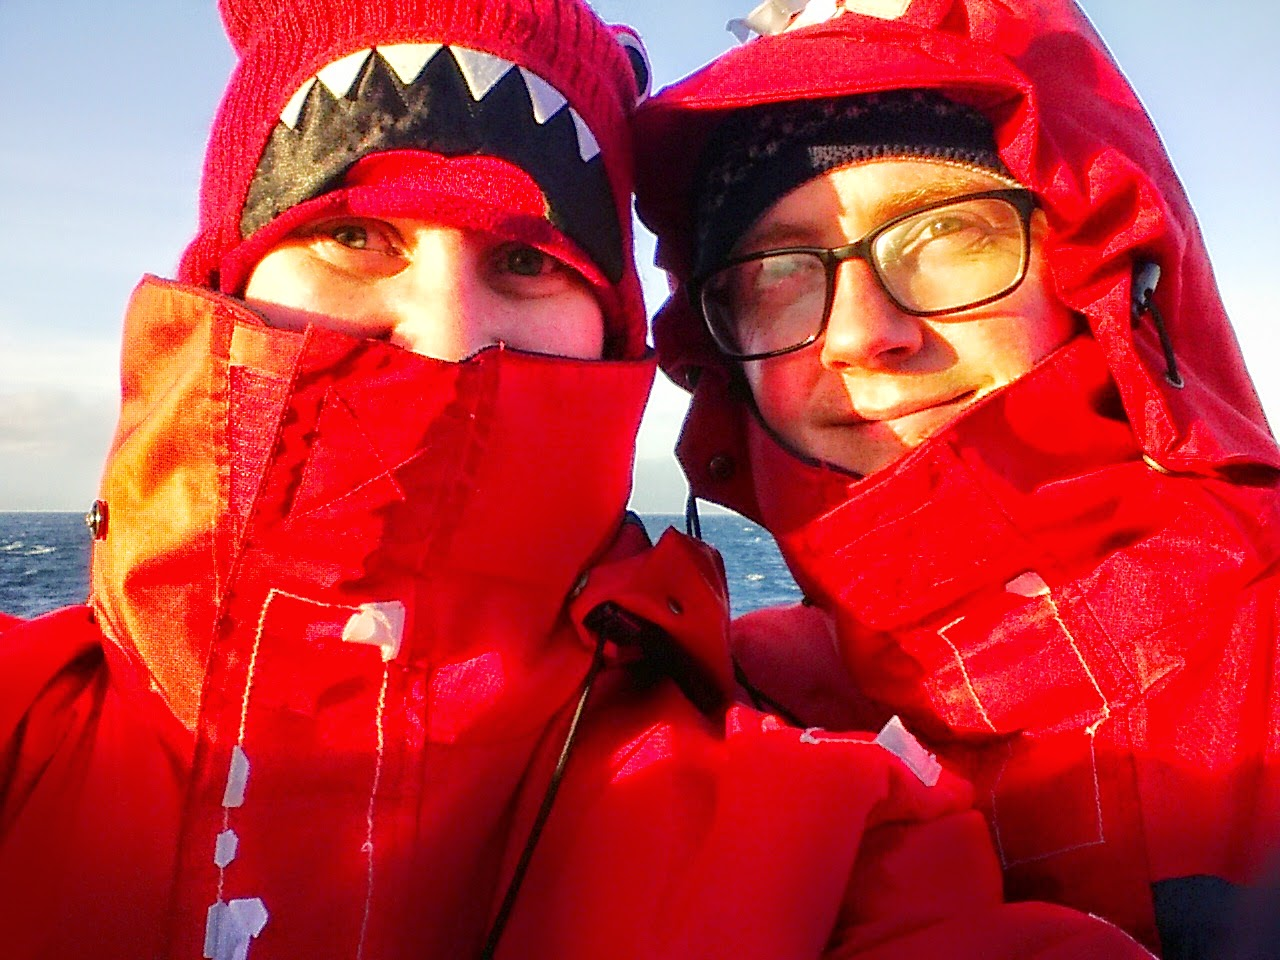 My Winter Iceland Adventure – Day 2, Whale Watching